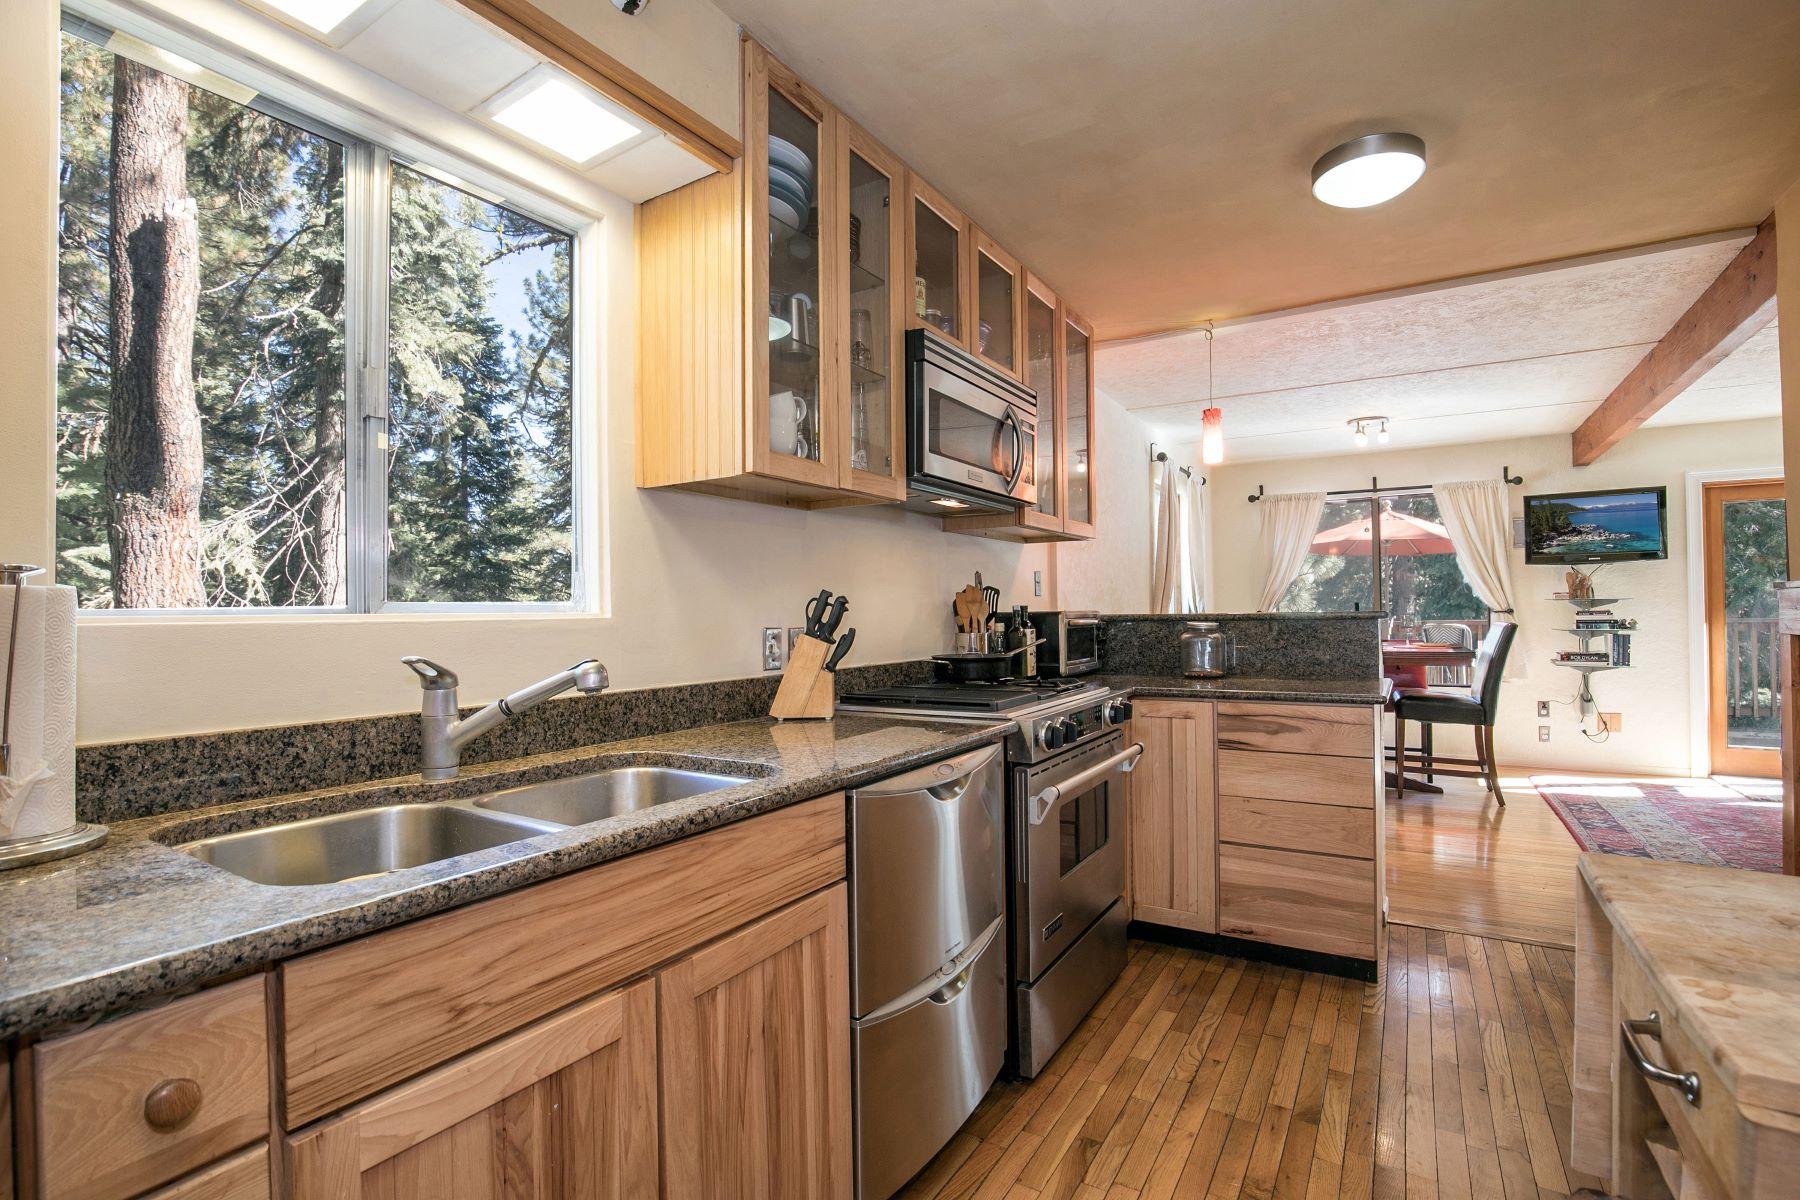 Additional photo for property listing at 11275 Beacon Road, Truckee, CA 96161 11275 Beacon Road Truckee, California 96161 United States